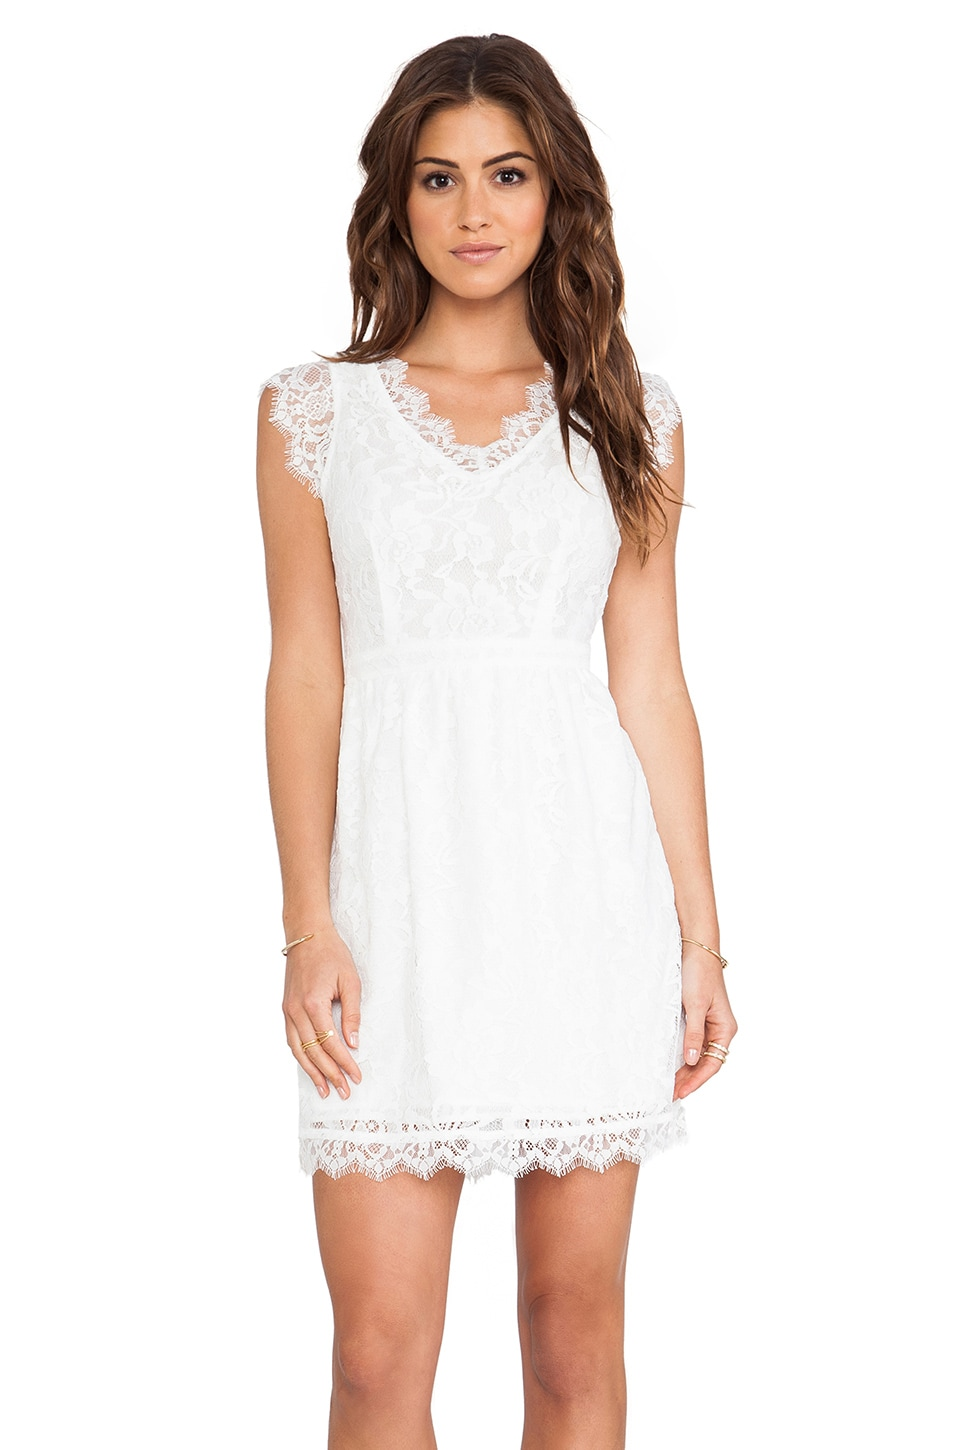 MM Couture by Miss Me Cap Sleeve Allover Lace Dress in White